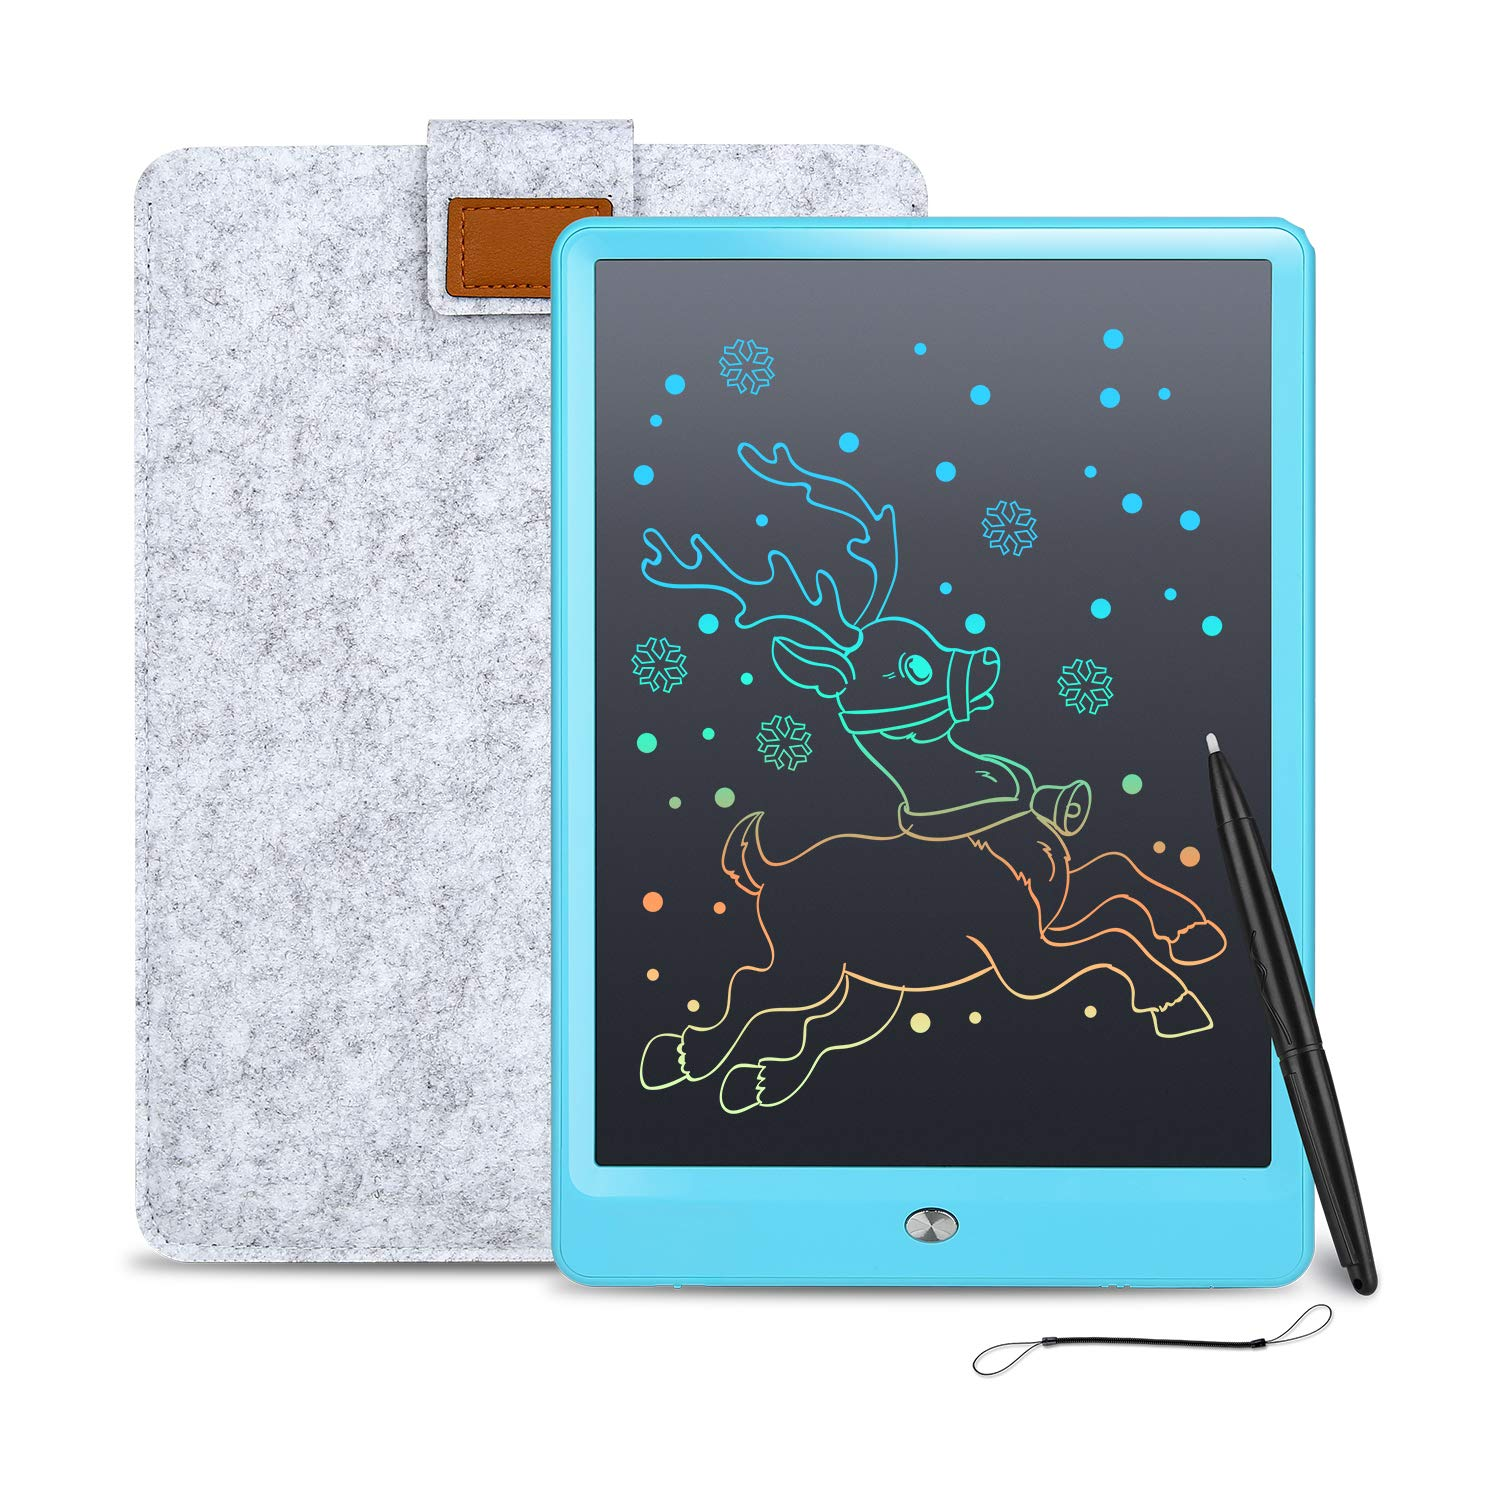 LCD Writing Tablet Cimetech 10 Inch Reusable eWriter, Doodle Drawing Pad Game Playing Board Gift for Toddlers & Kids, Teacher Planner Bulletin Notepad Board with Stylus - Blue